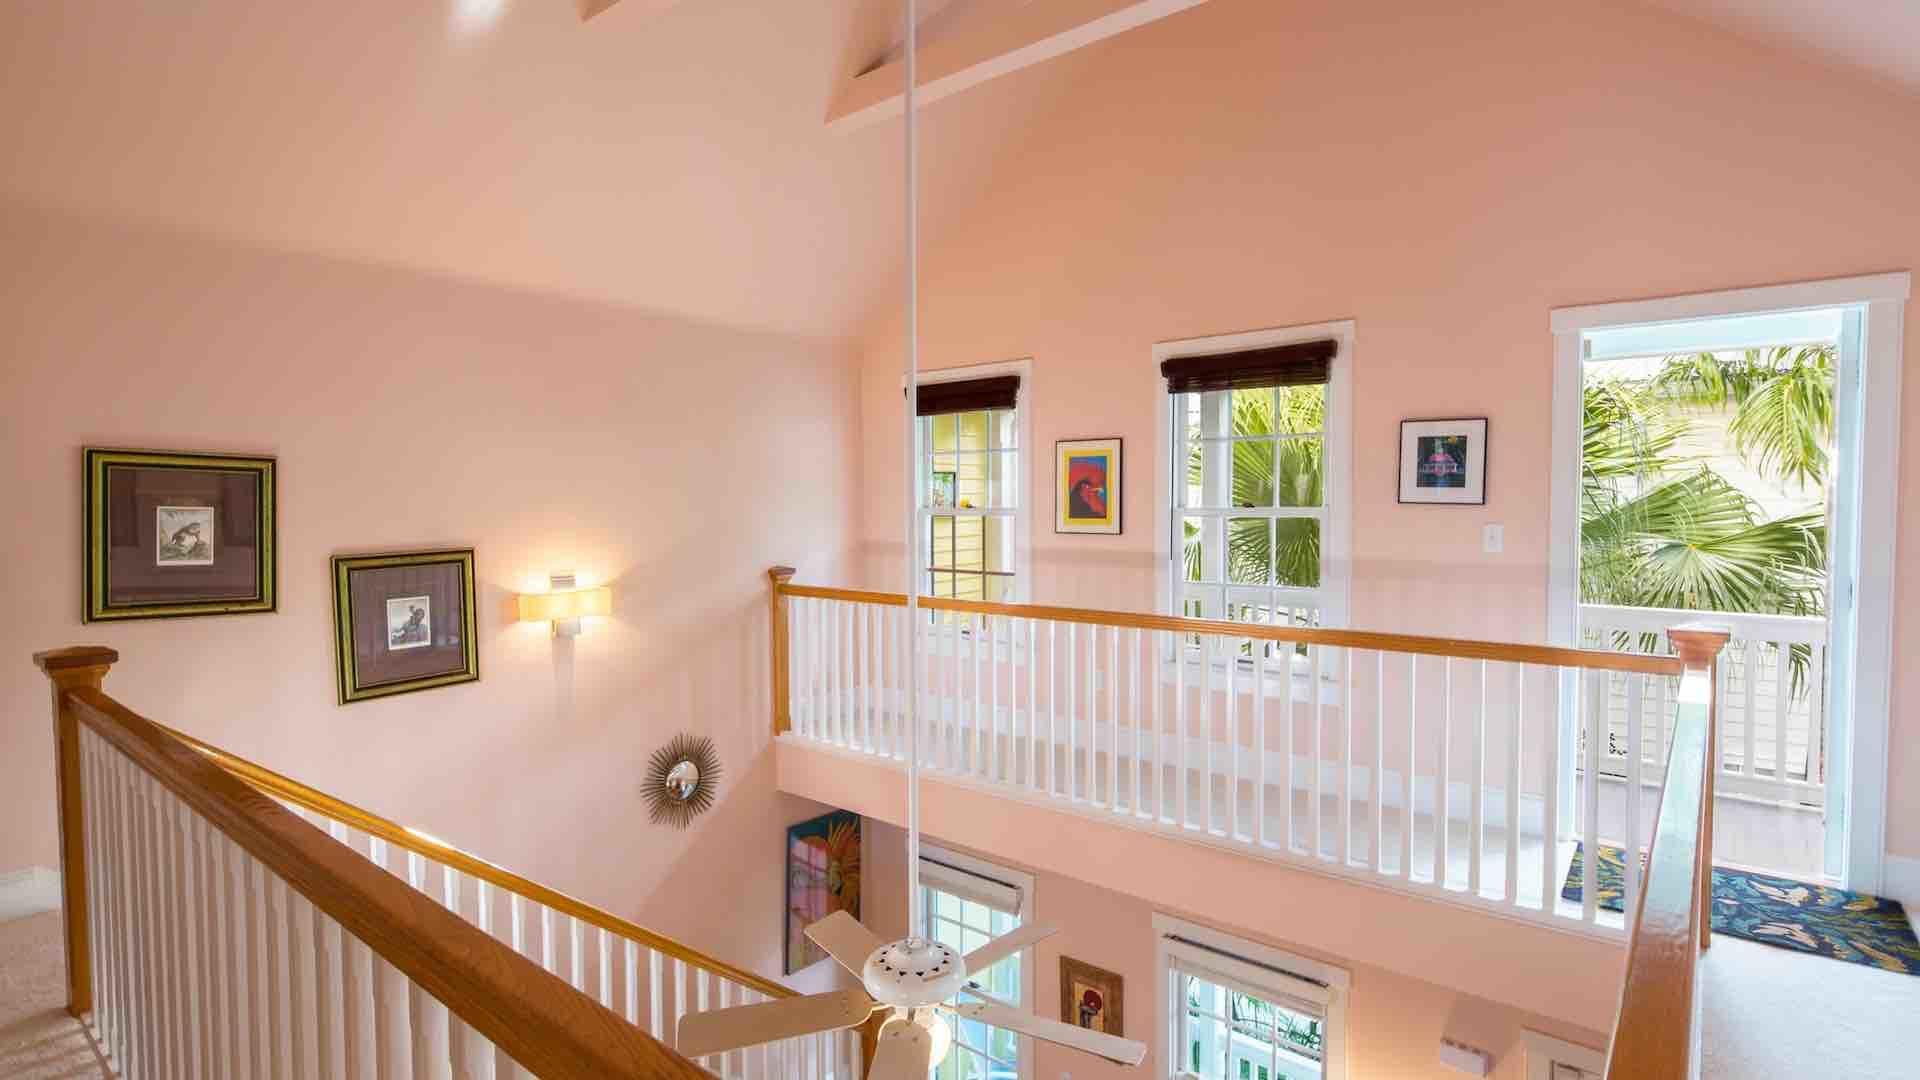 Take the stairs to the second floor, where you'll find the master bedroom and front balcony...